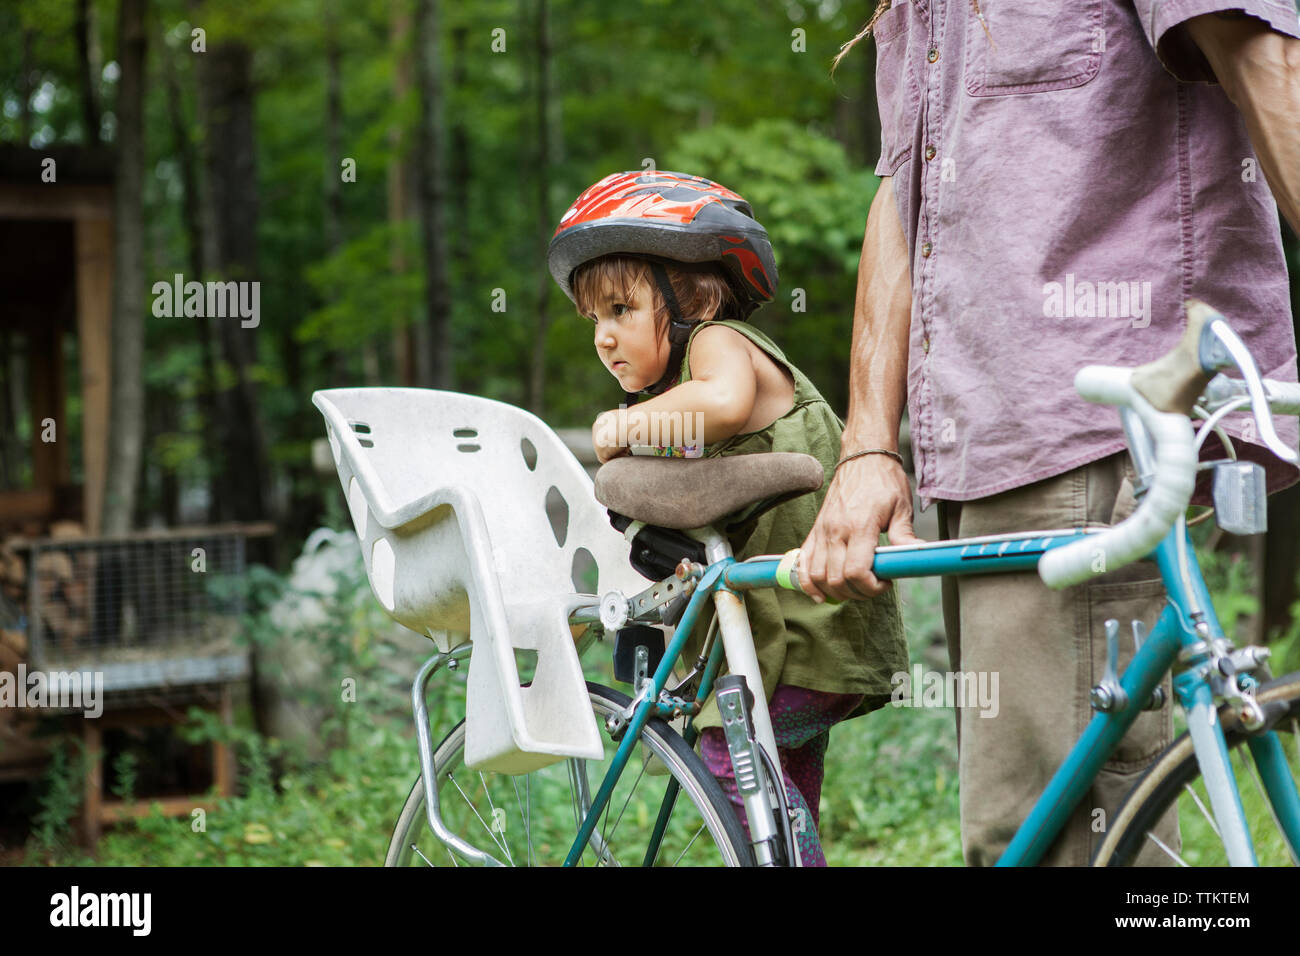 Midsection of man with daughter on bicycle in backyard - Stock Image